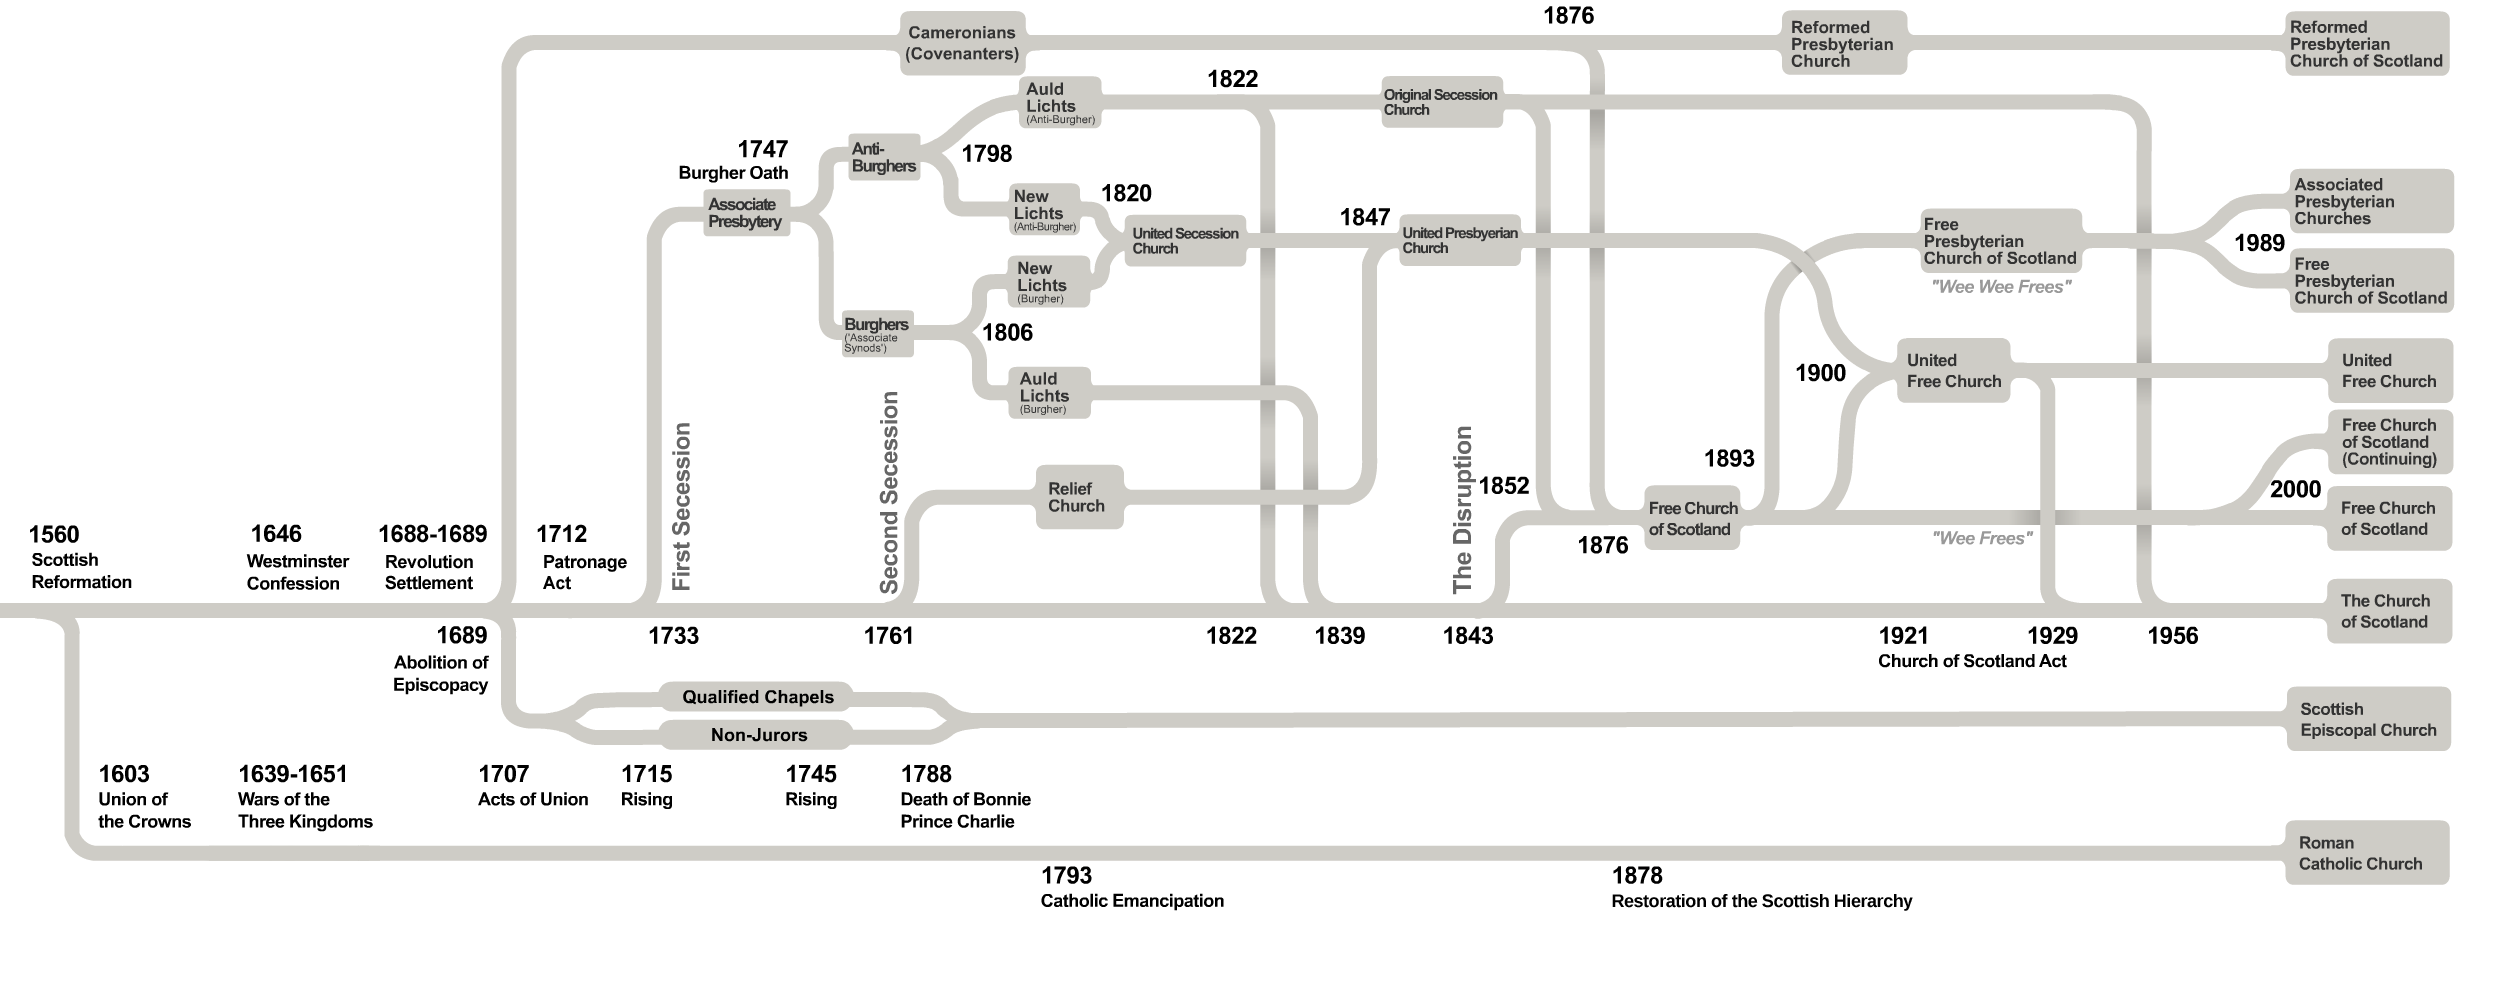 Timeline Diagram Showing The